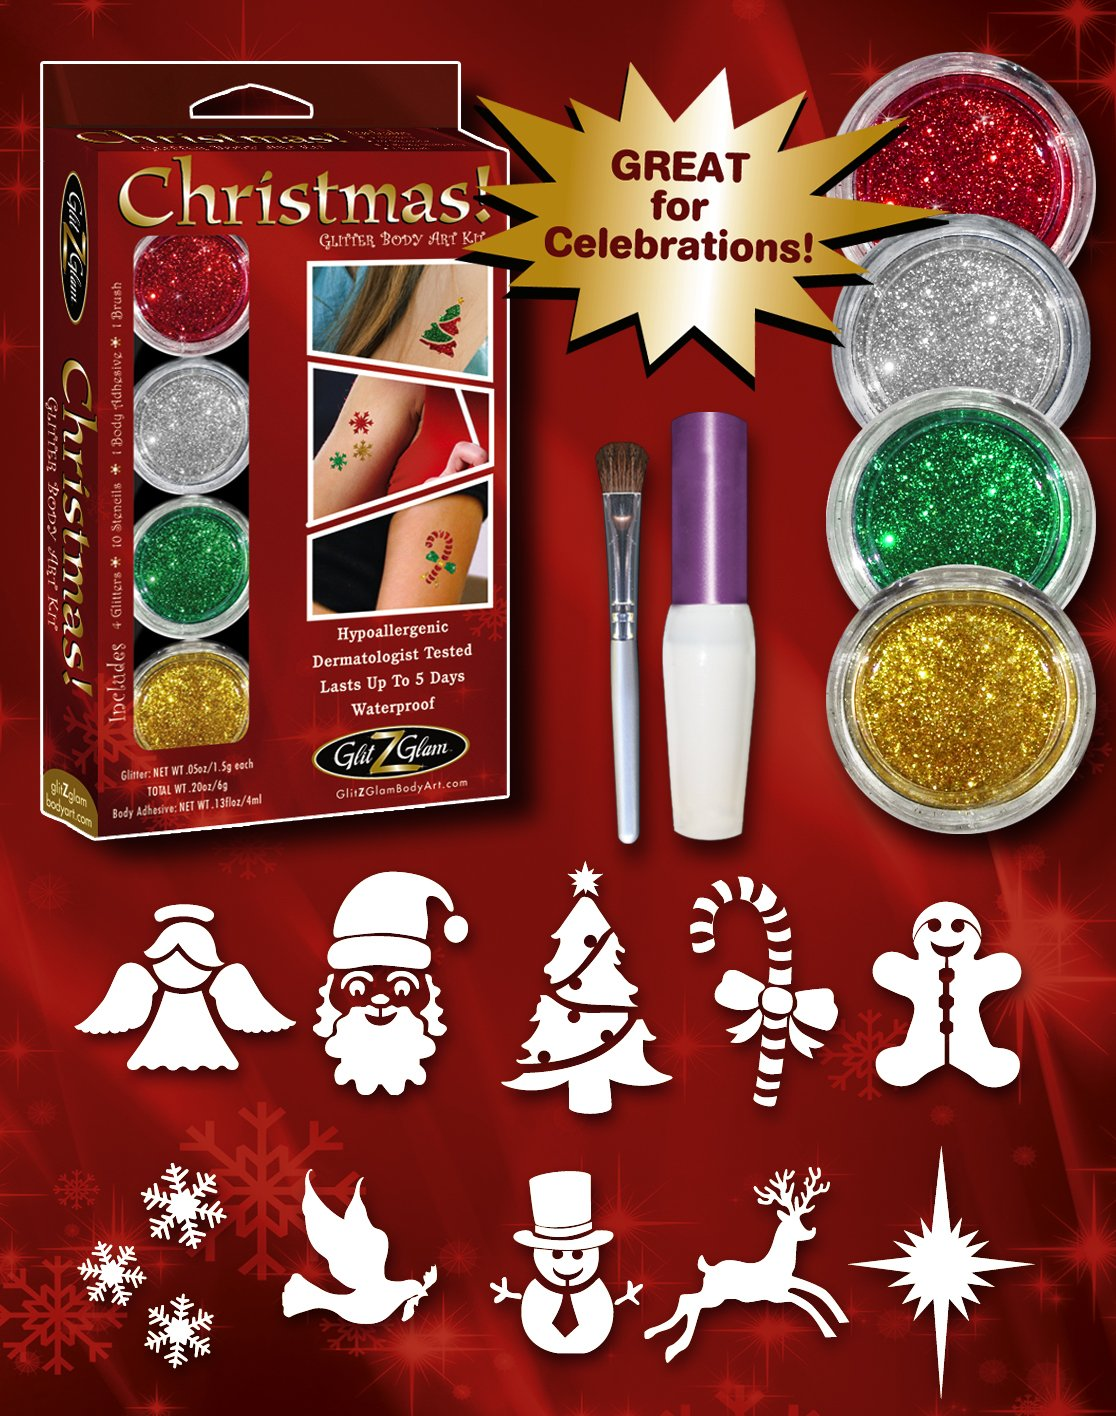 Christmas Glitter Tattoo Kit - HYPOALLERGENIC and DERMATOLOGIST TESTED! by GlitZGlam